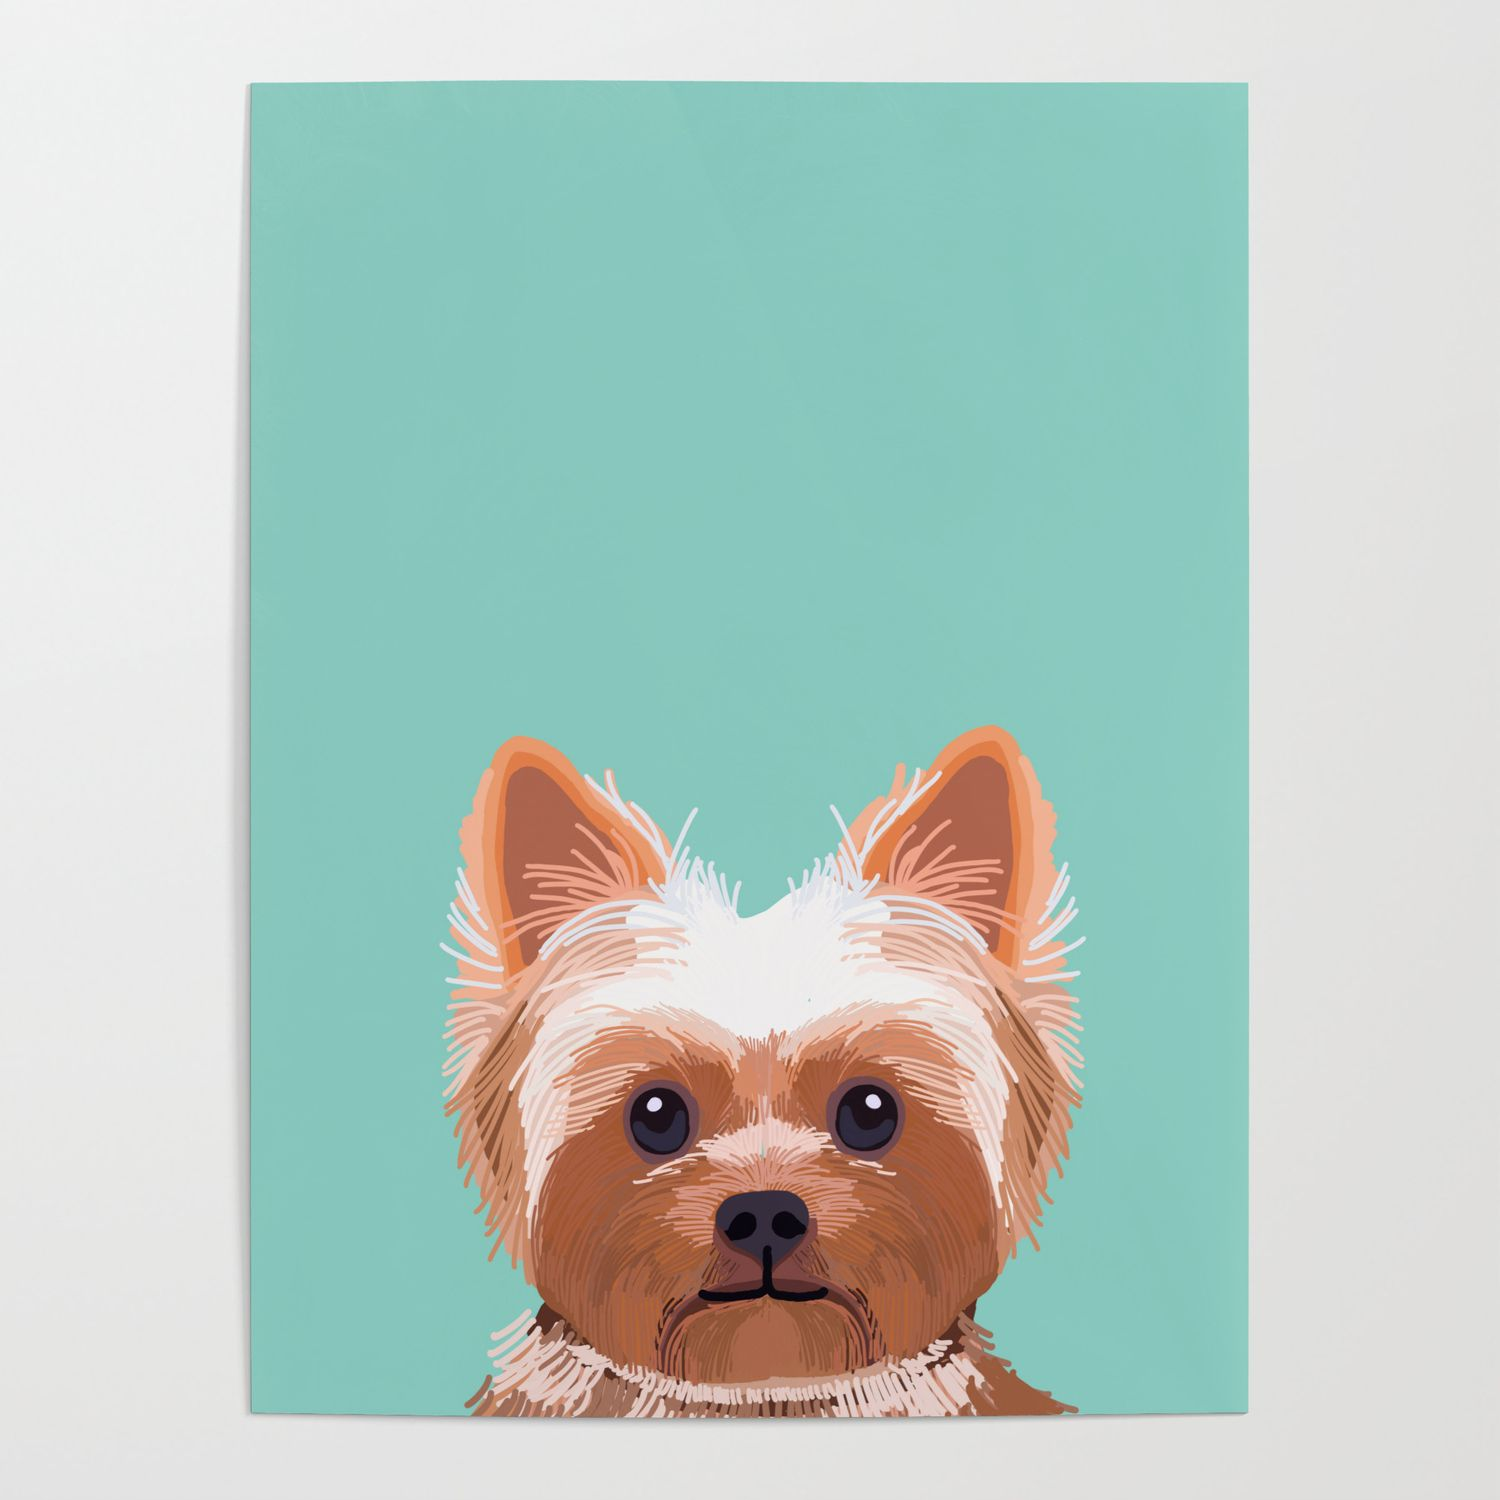 Yorkshire Terrier Dog Portrait Pink Cute Art Gifts For Yorkie Dog Breed Lovers Poster By Petfriendly Dog Portraits Yorkie Dogs Yorkshire Terrier Dog [ 1500 x 1500 Pixel ]